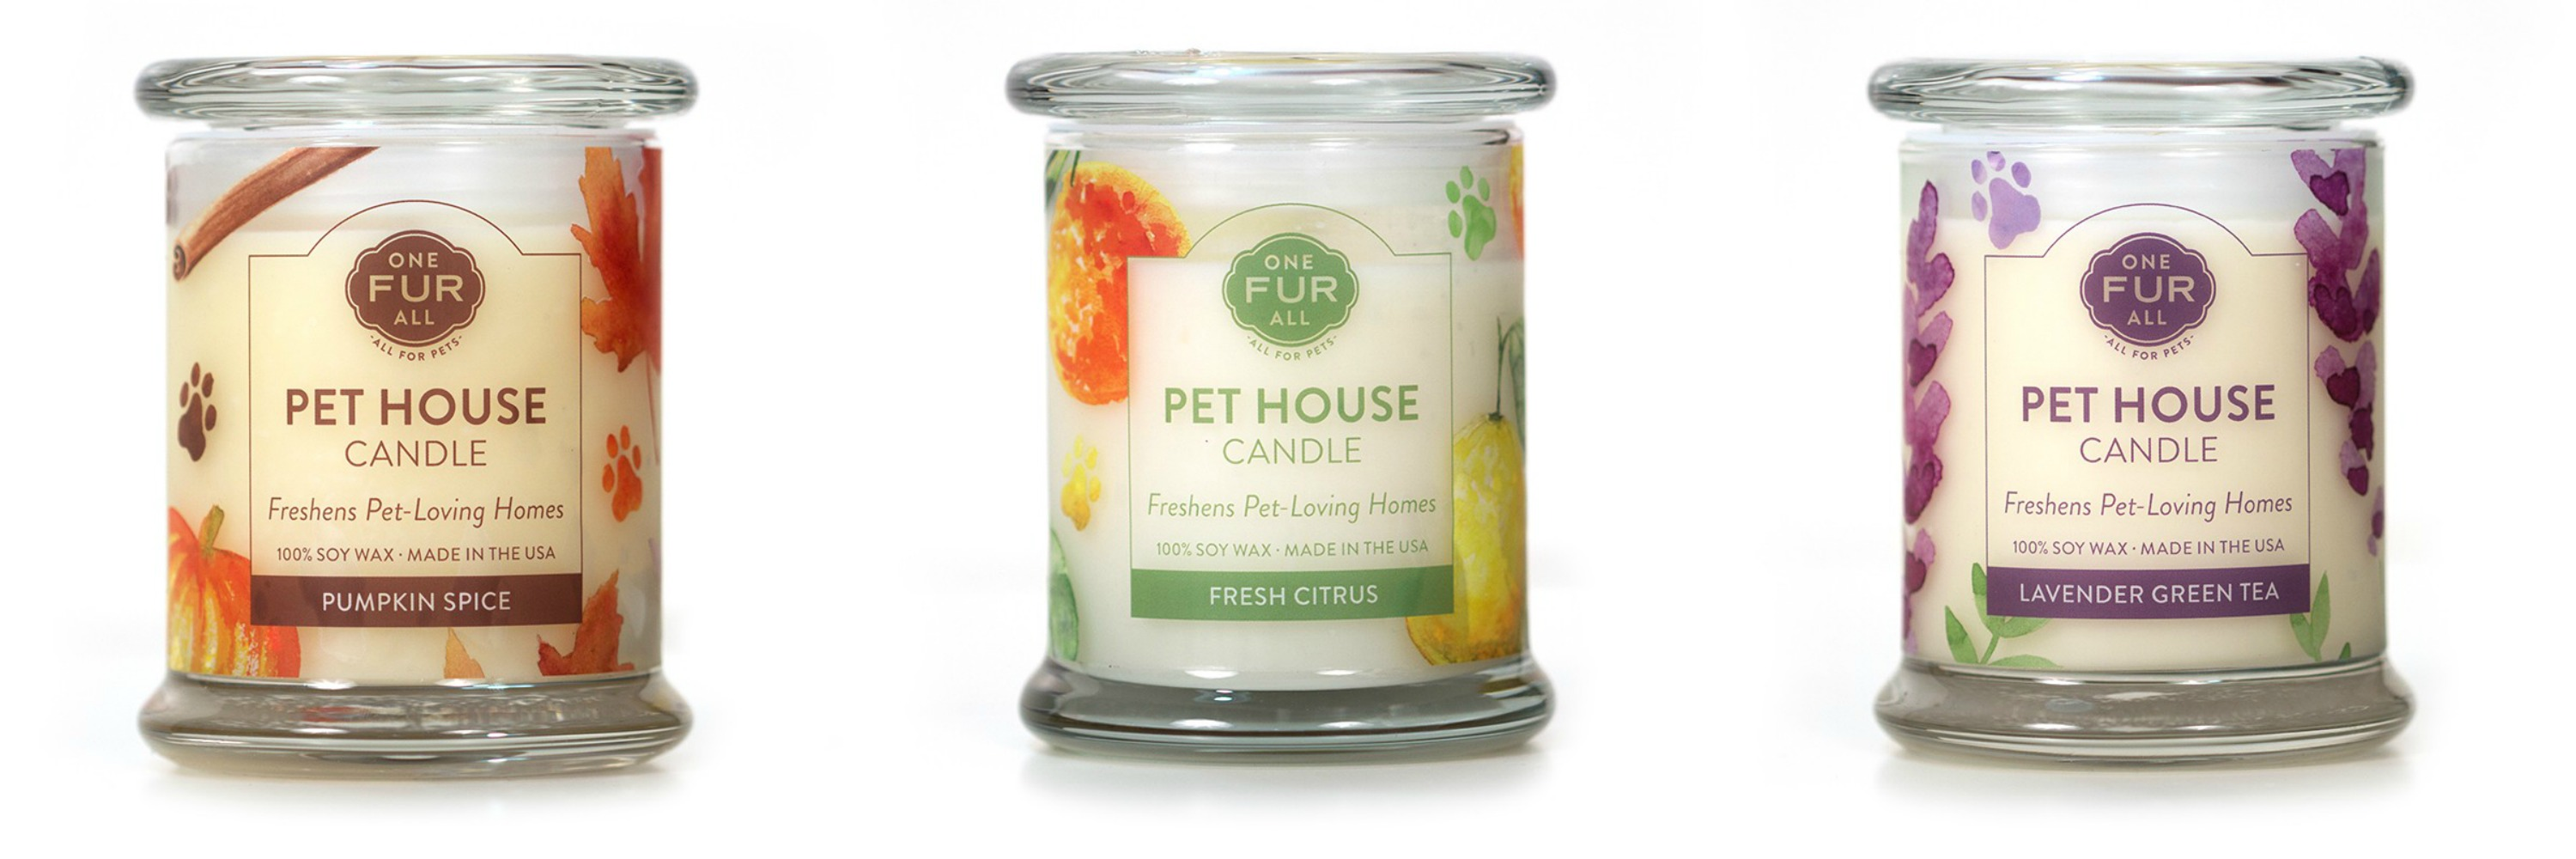 Pet House Candle in All Three Scents